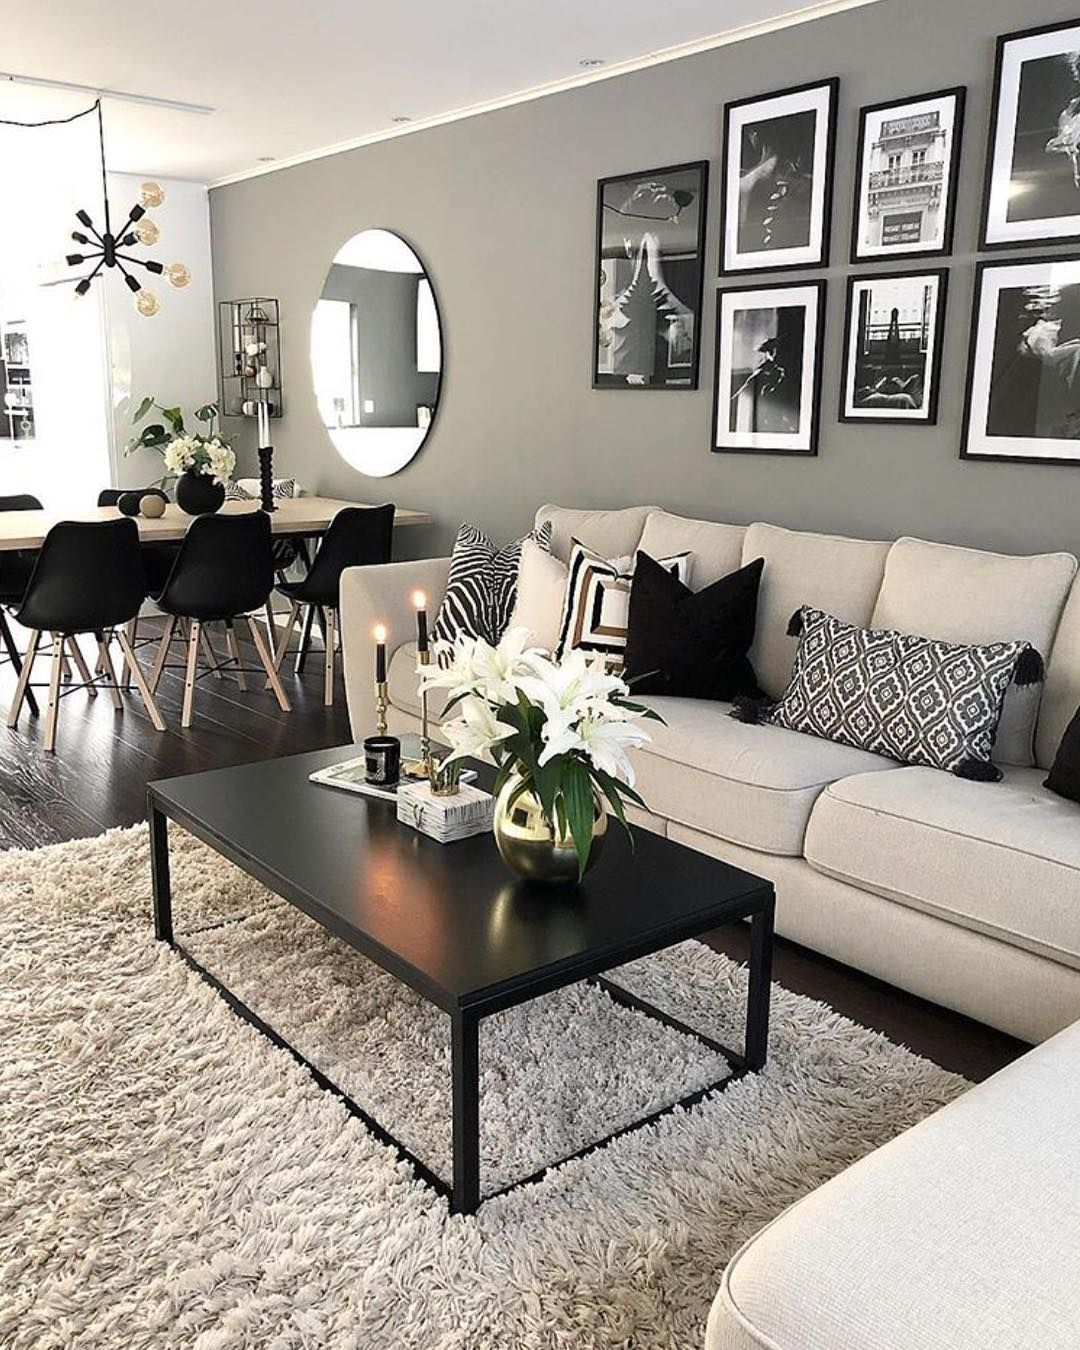 NEW ACCOUNT Werbung Especially for black&white lovers pls look at this details … #livingroomdesigns